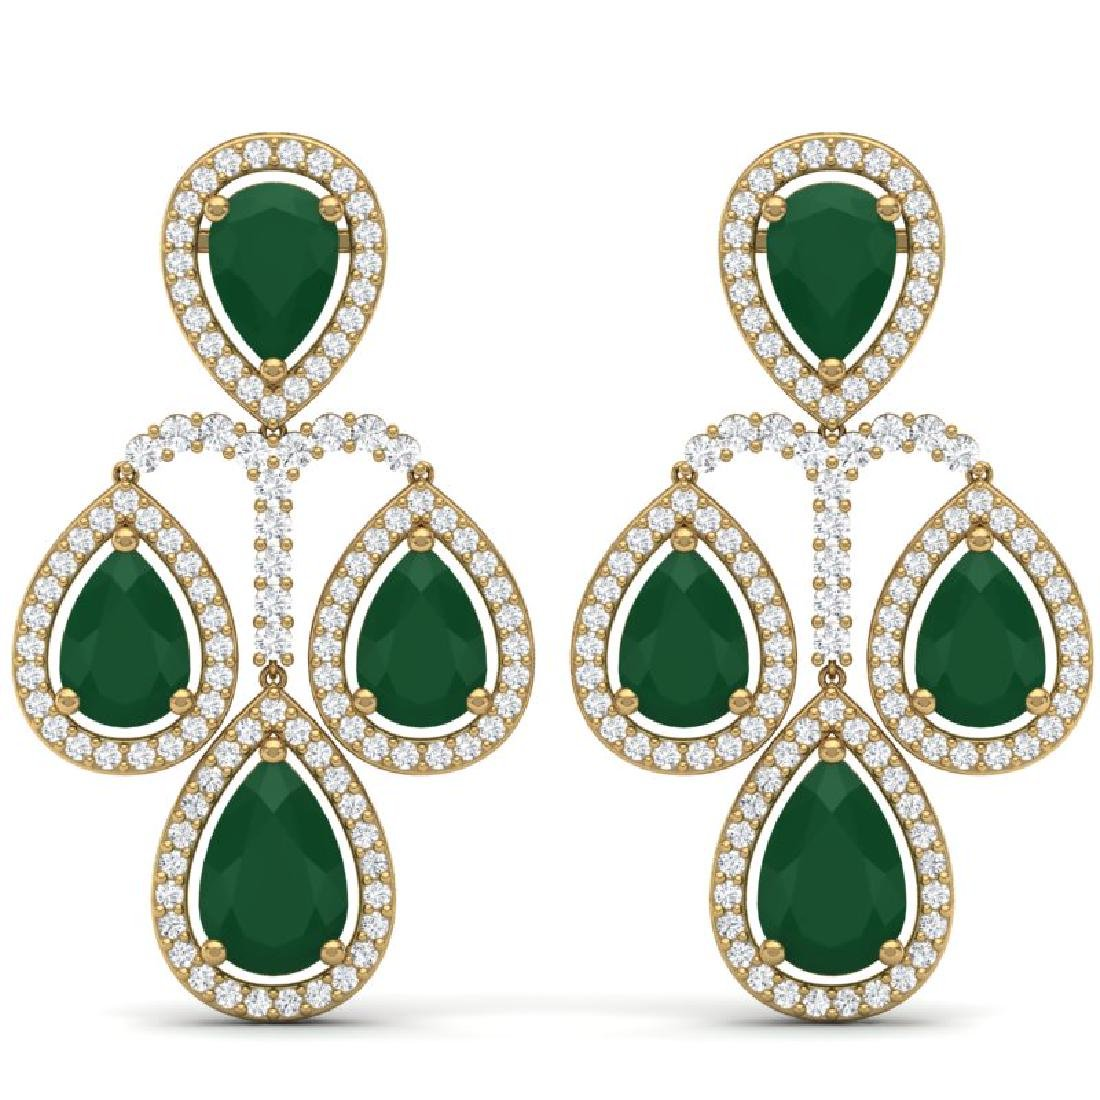 29.23 CTW Royalty Emerald & VS Diamond Earrings 18K